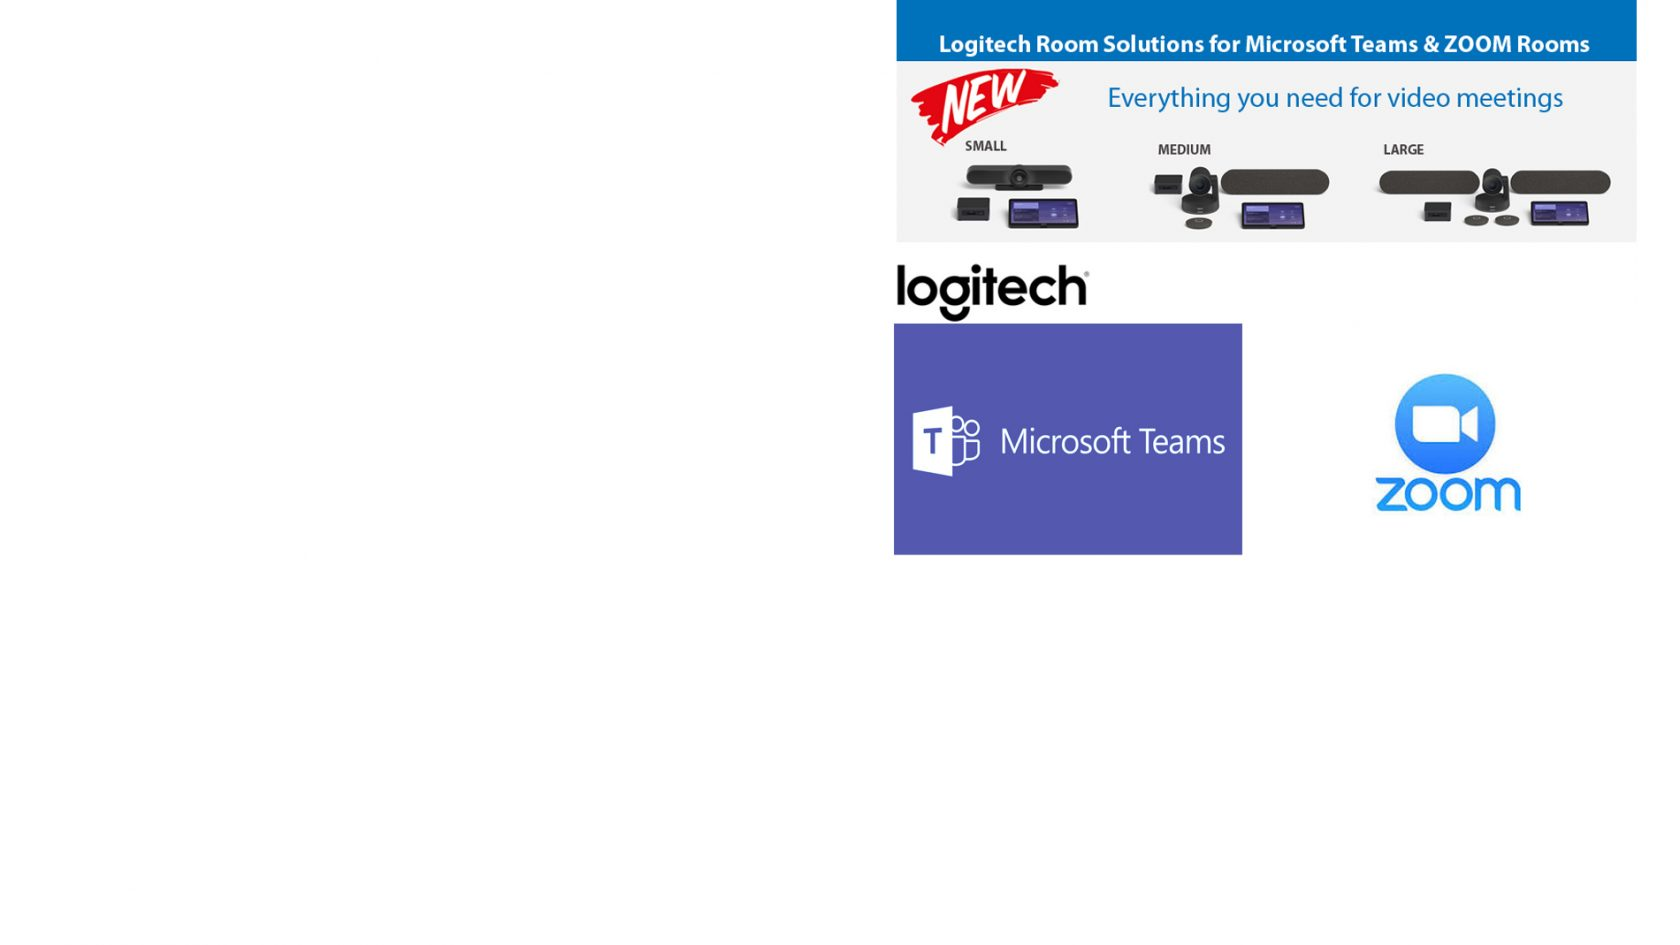 NEW Logitech Room Solutions for Microsoft Teams & Zoom Rooms – Everything you need for video meetings